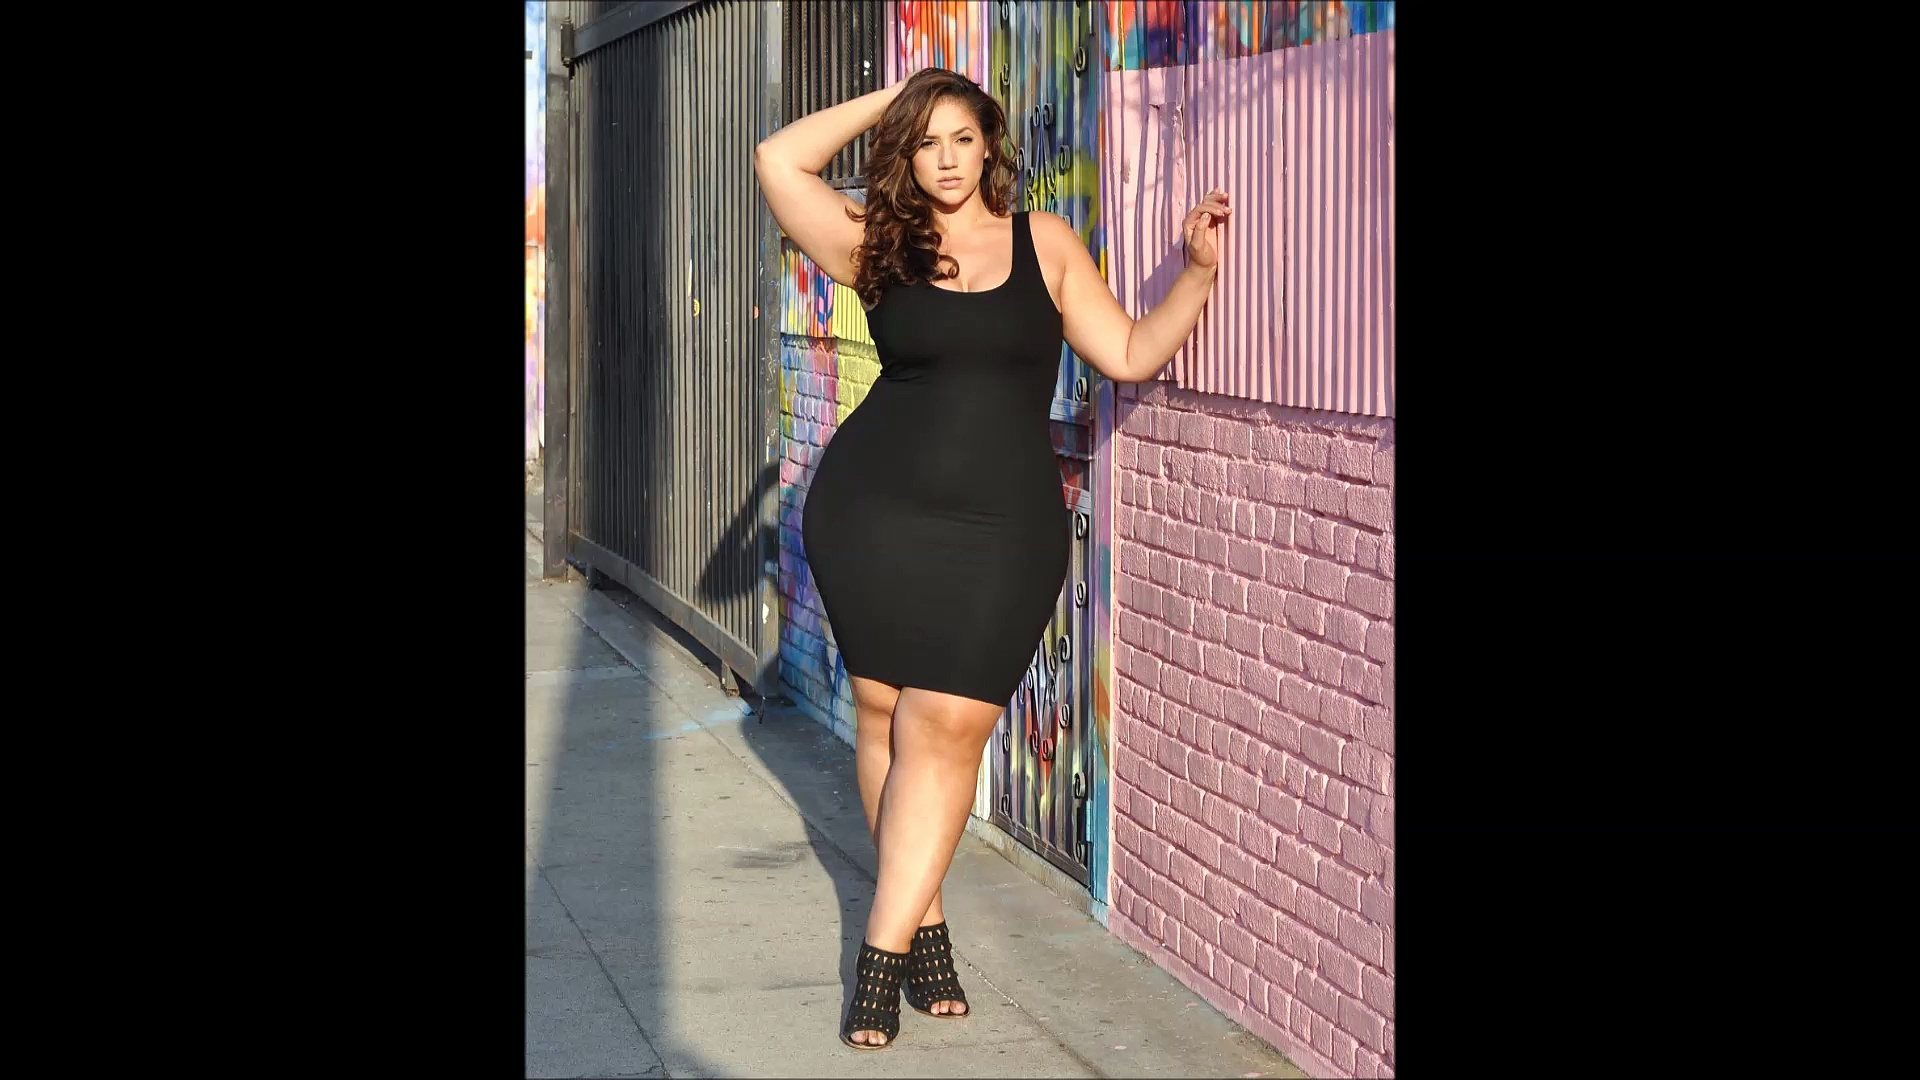 Gorgeous Fashion Model Latest New Plus Size Fashion. http://bit.ly/2Xc4EMY